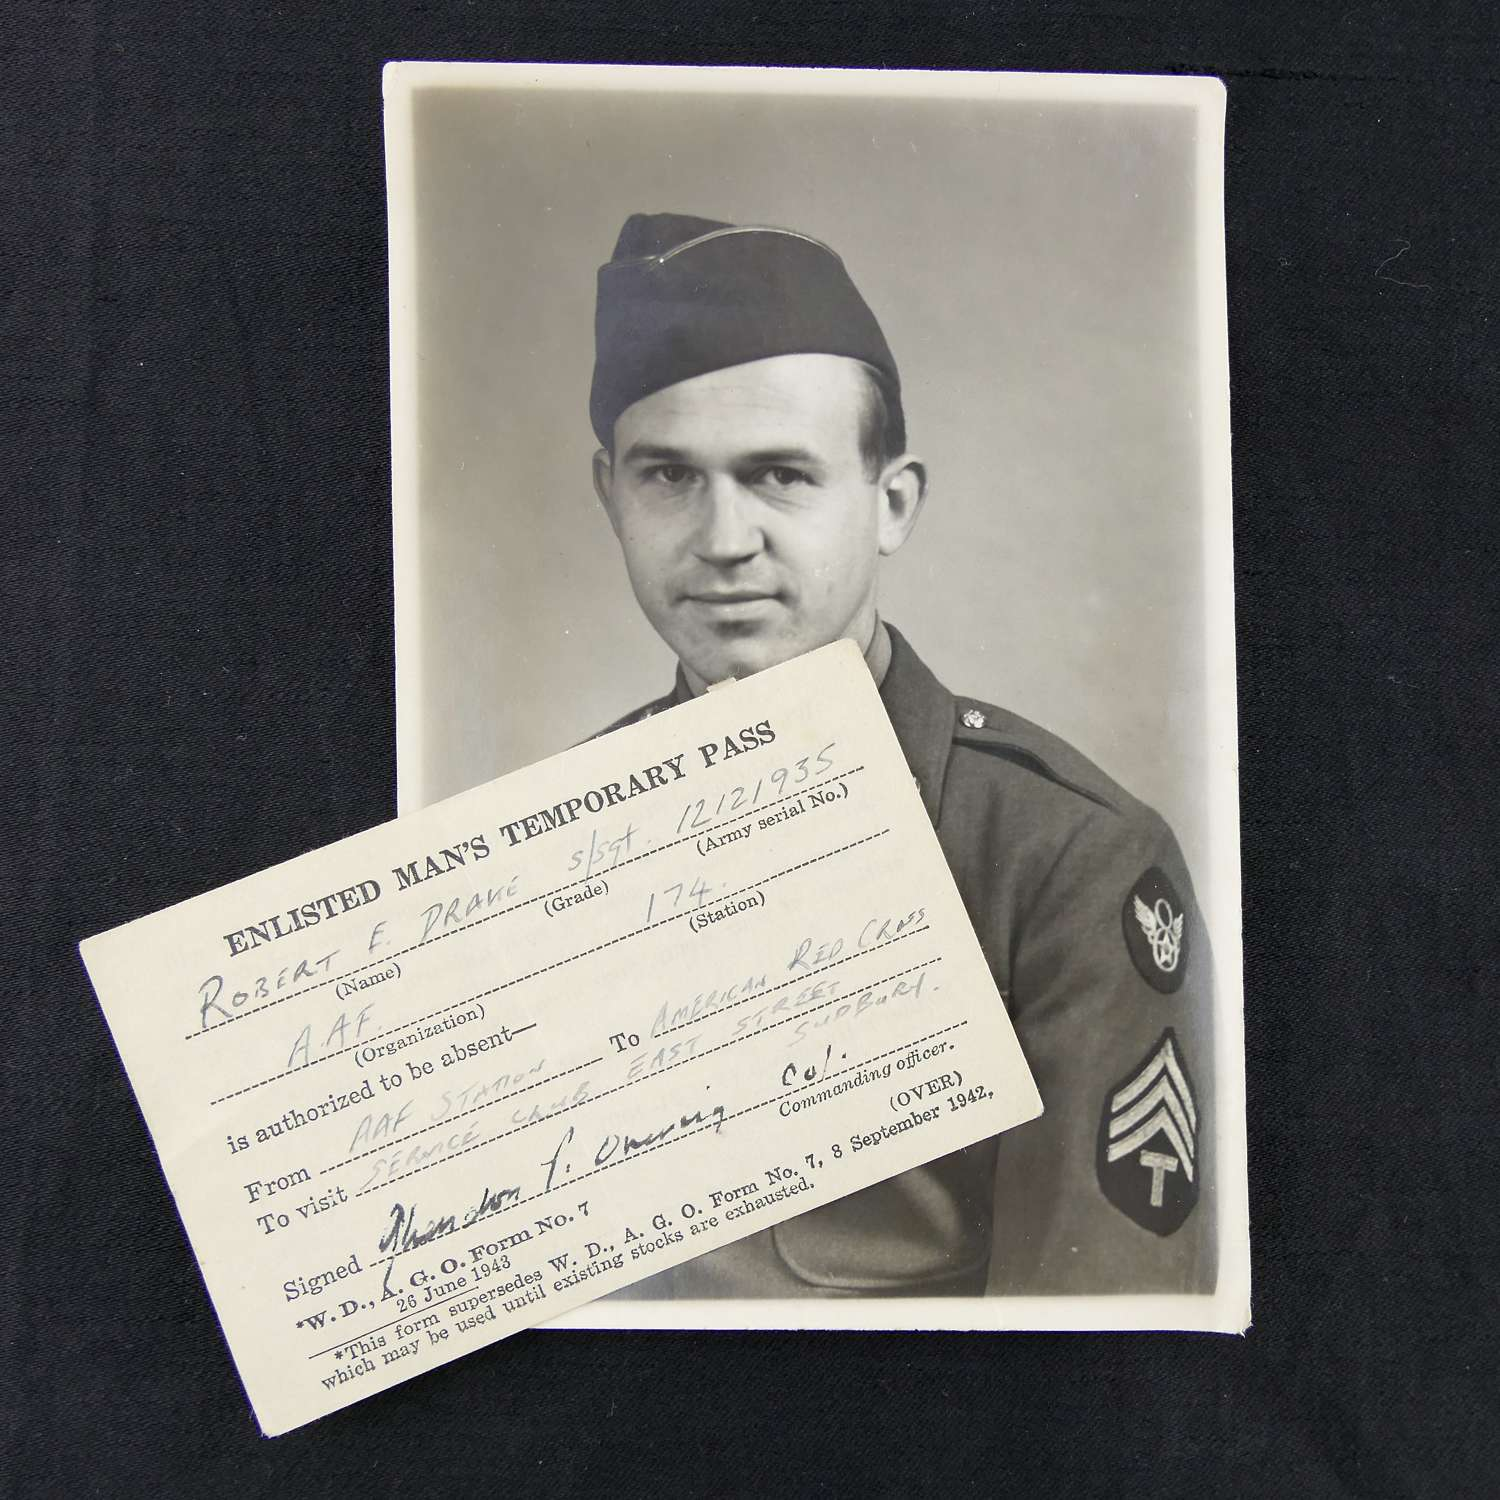 USAAF 8th AAF photograph and pass